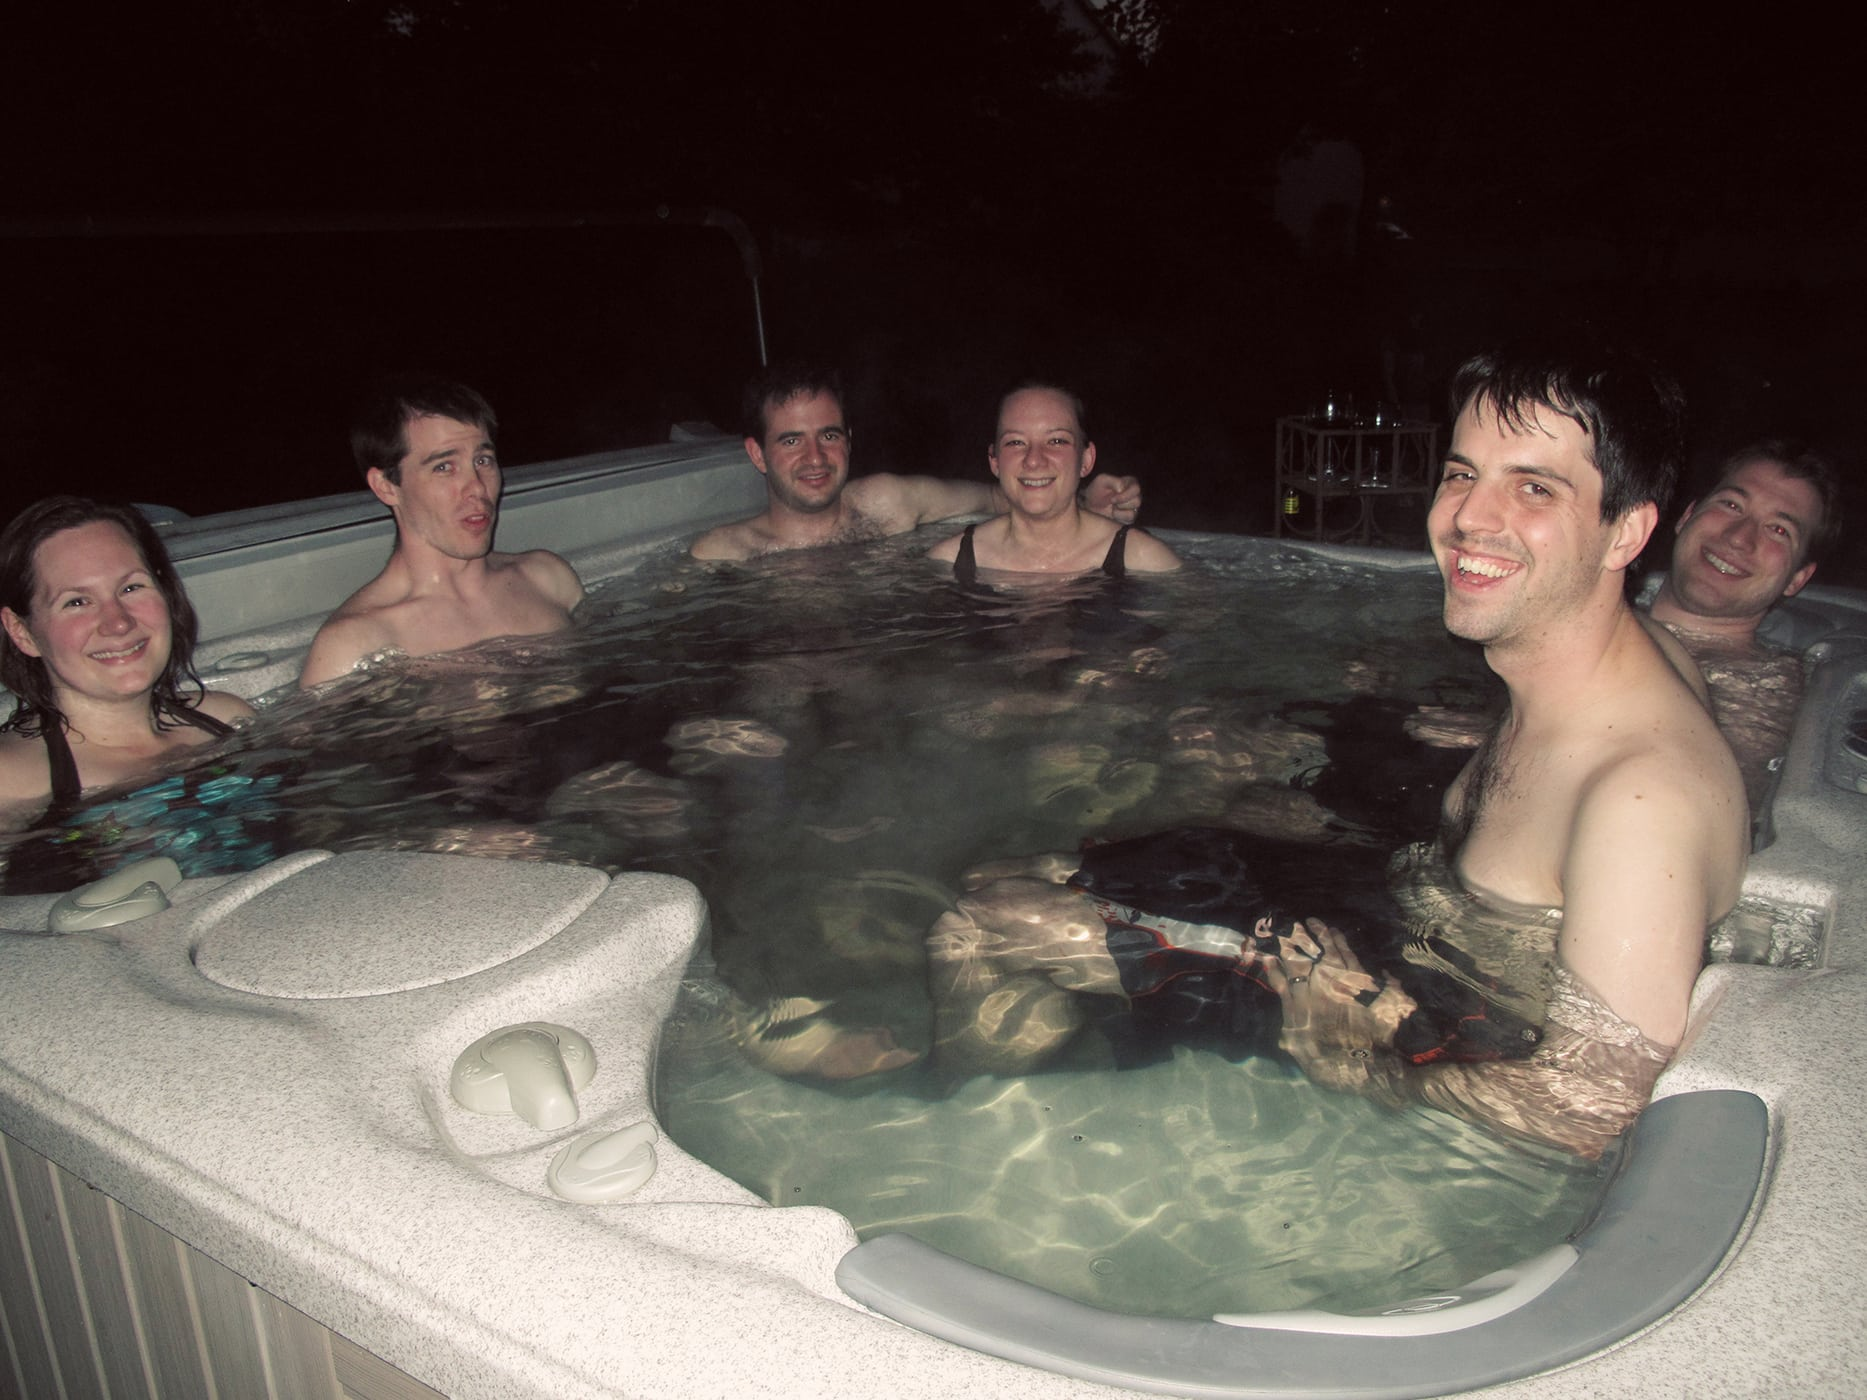 Joe's Hot Tub Birthday Party